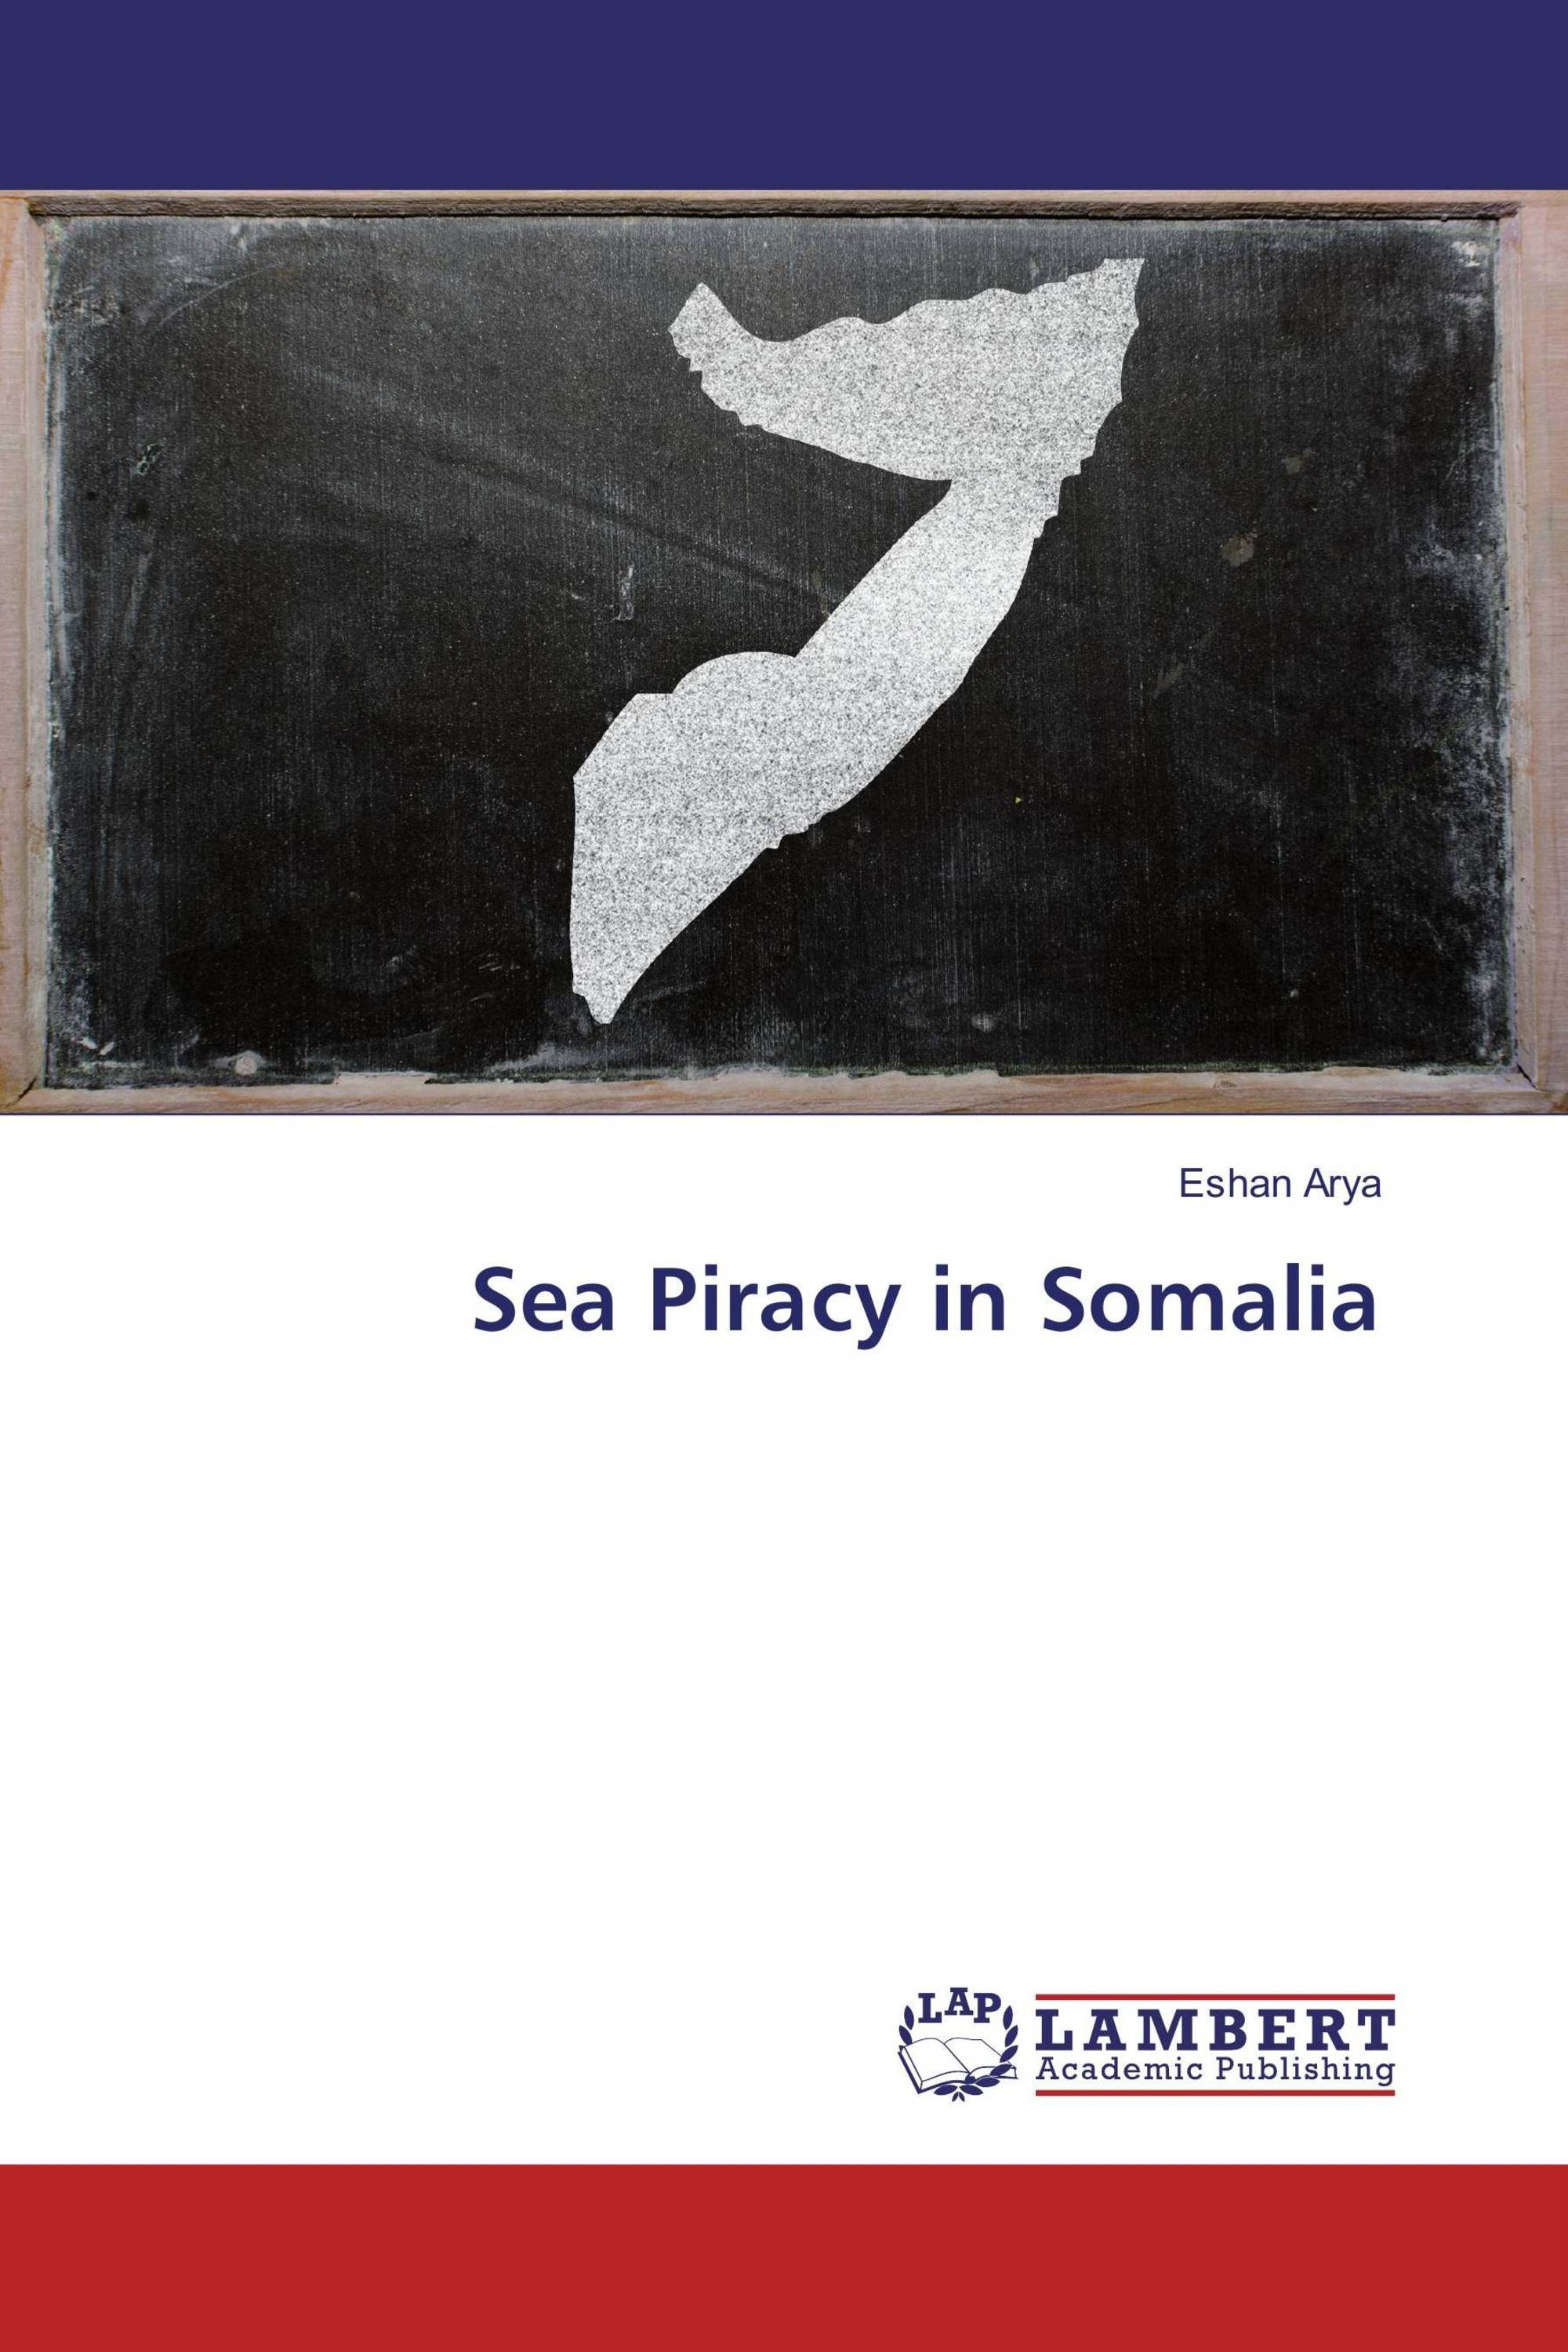 Somalia warns of return to piracy